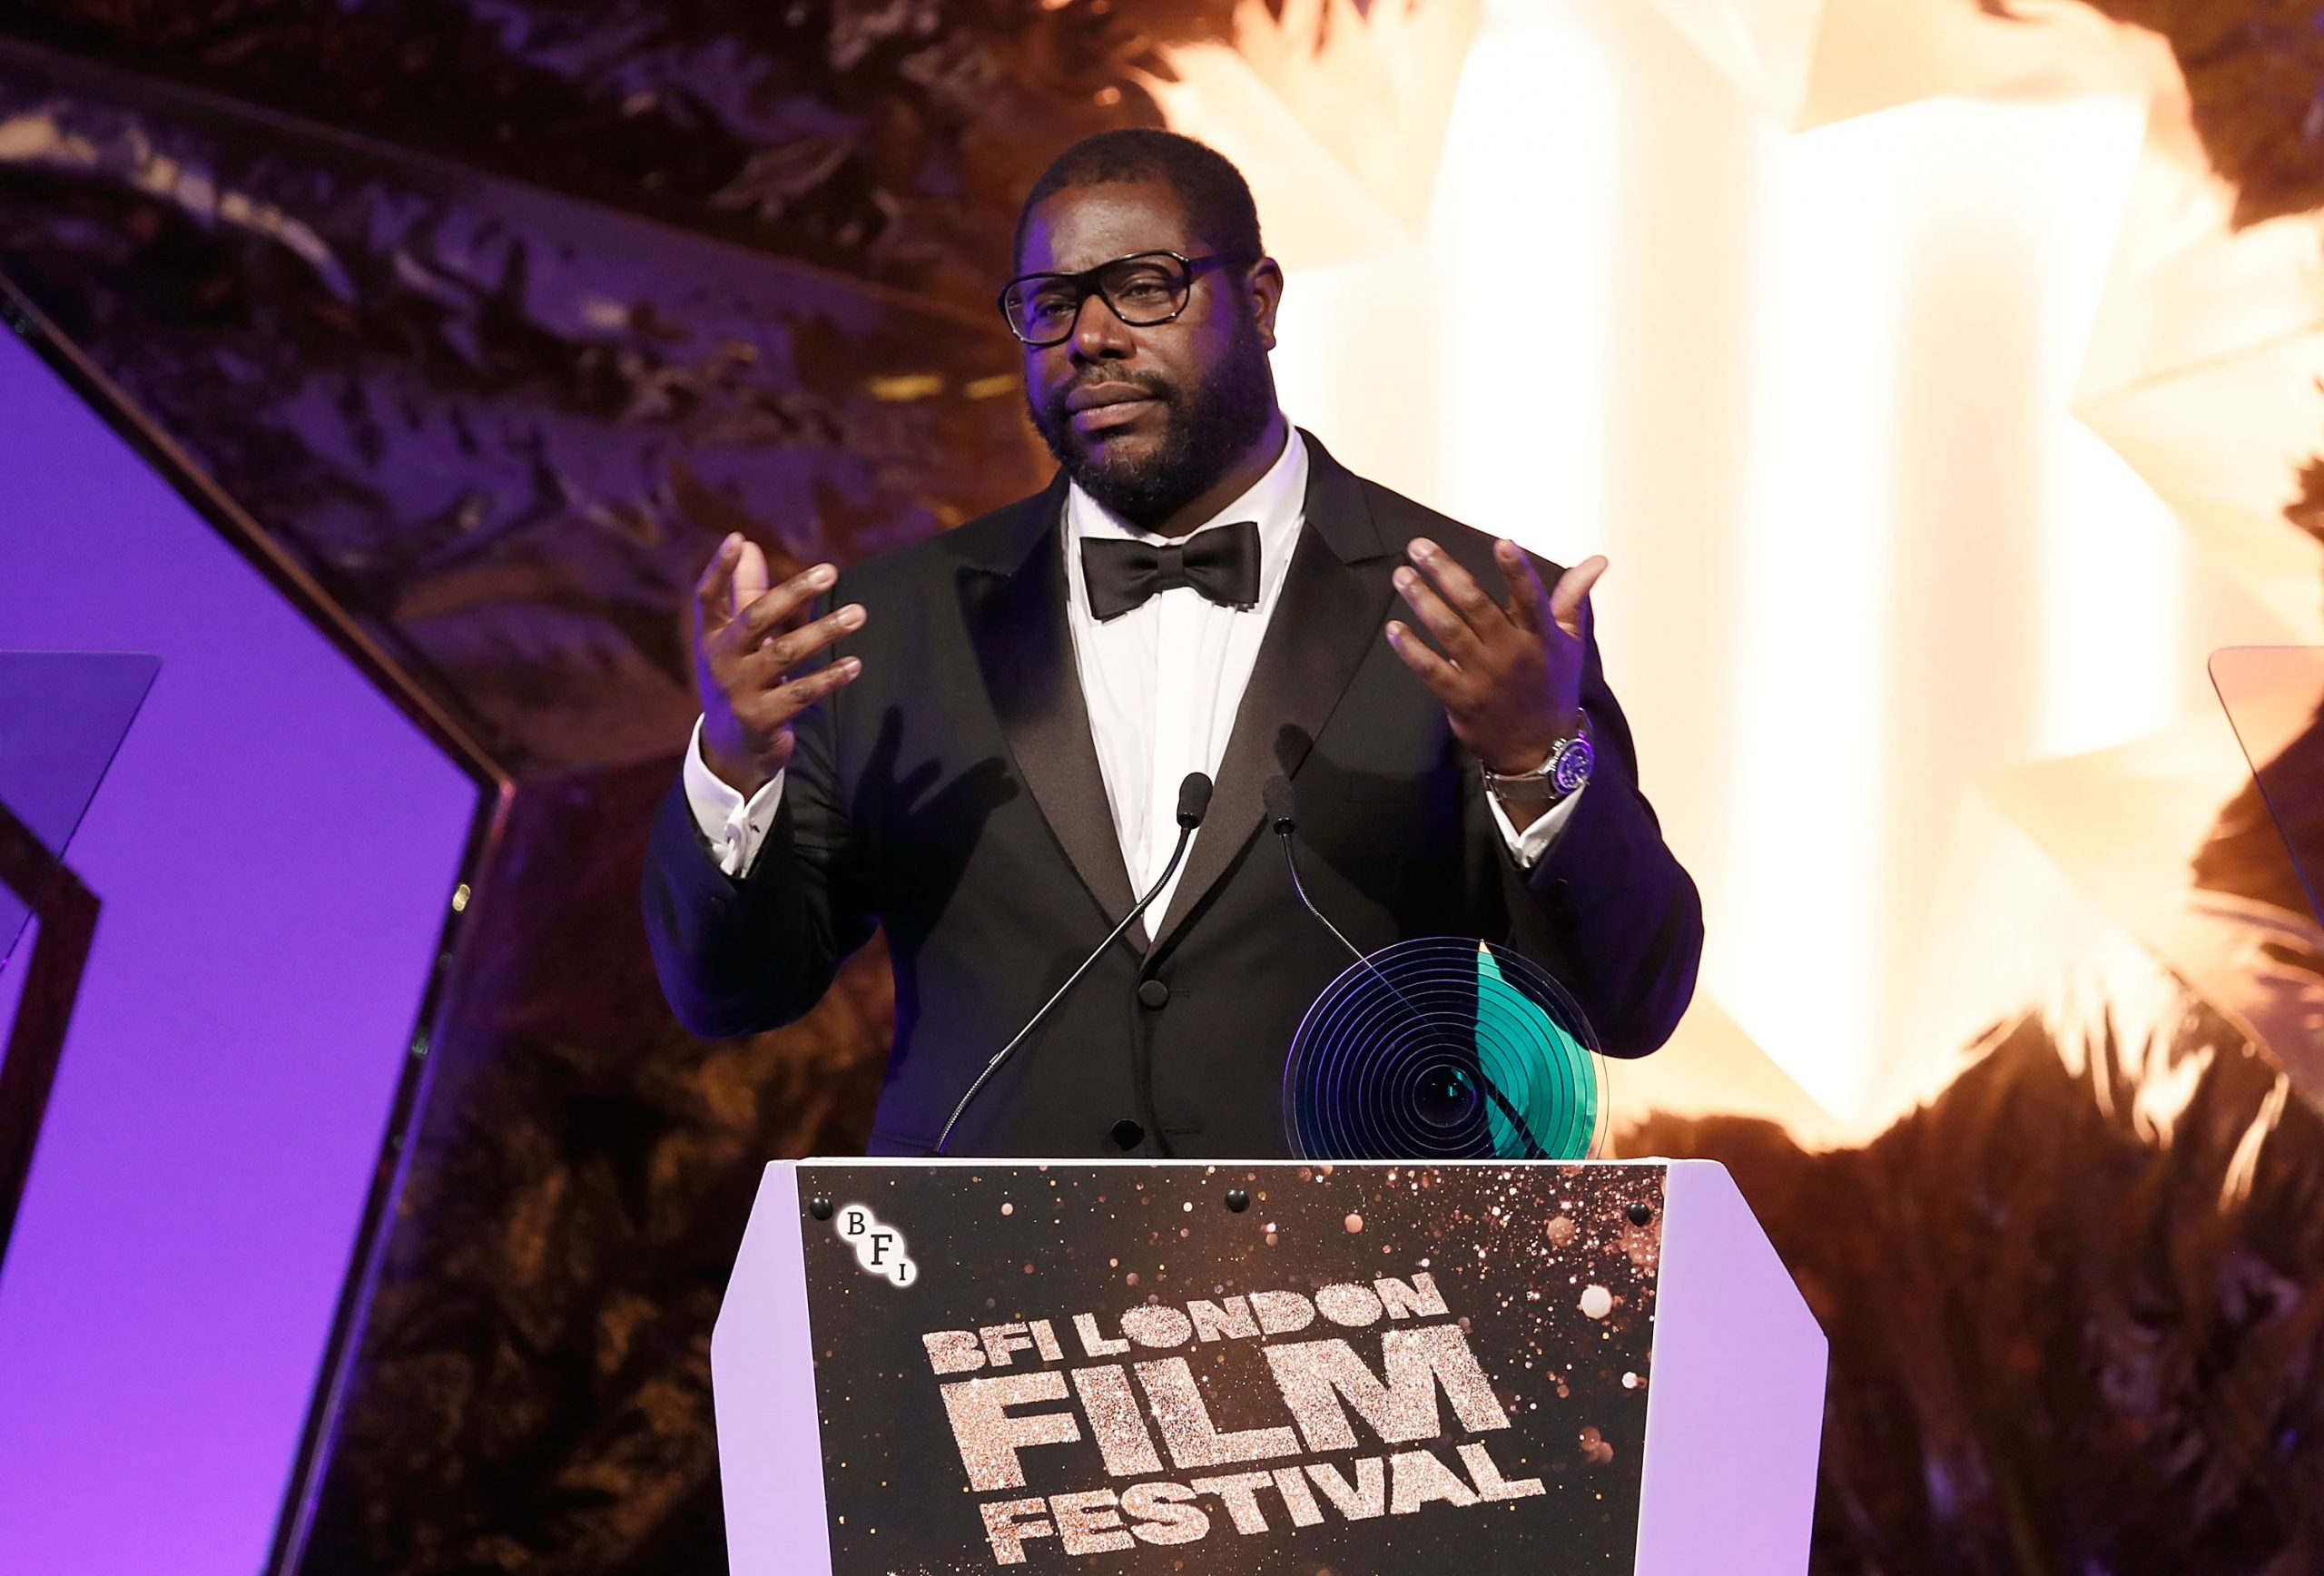 Director Steve McQueen accepts the BFI Fellowship Award at the BFI London Film Festival Awards during the 60th BFI London Film Festival at Banqueting House on October 15, 2016 in London, England.  (Photo by John Phillips/Getty Images for BFI)